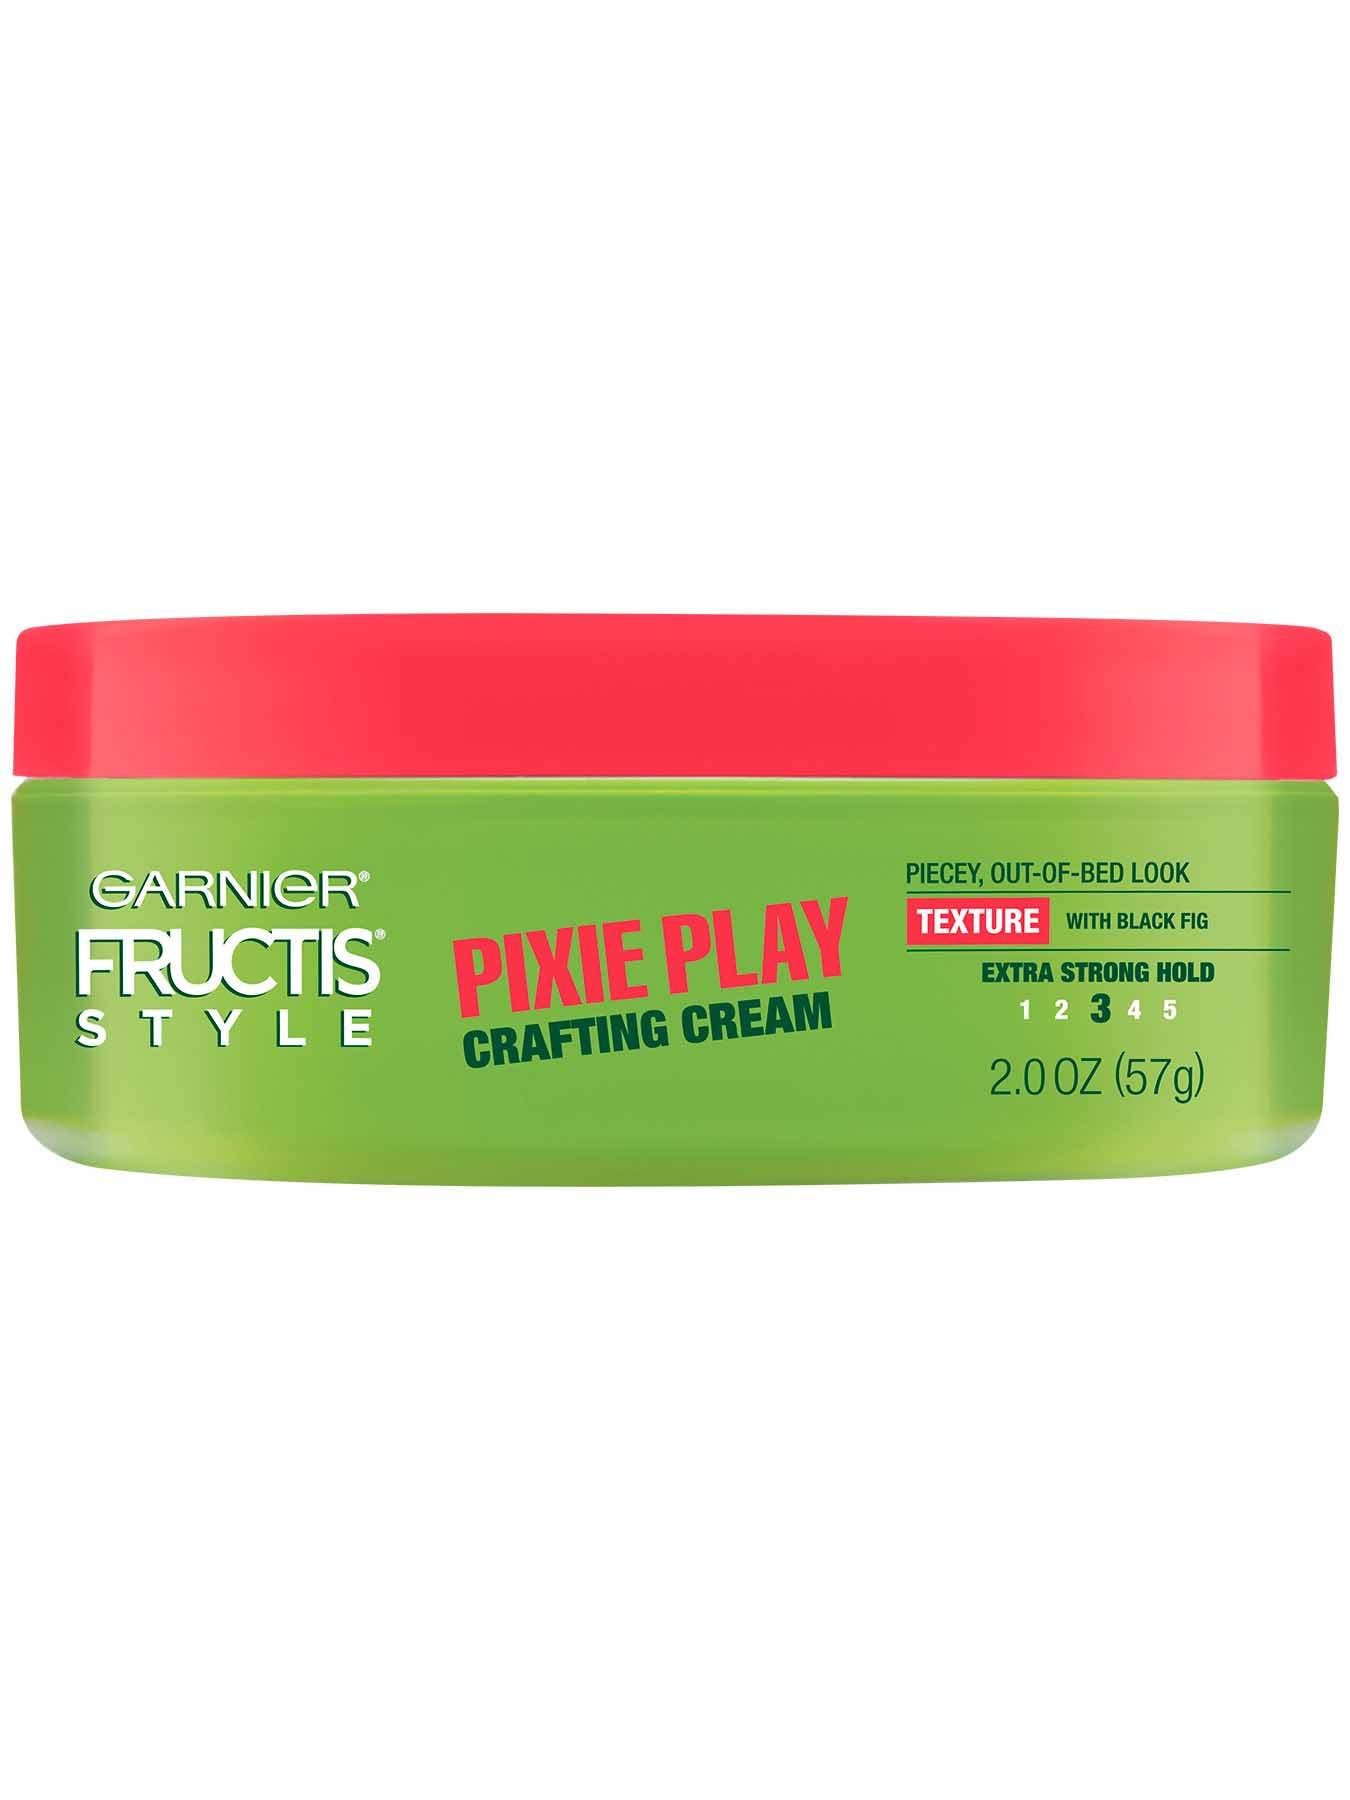 Front view of Pixie Play Crafting Cream.